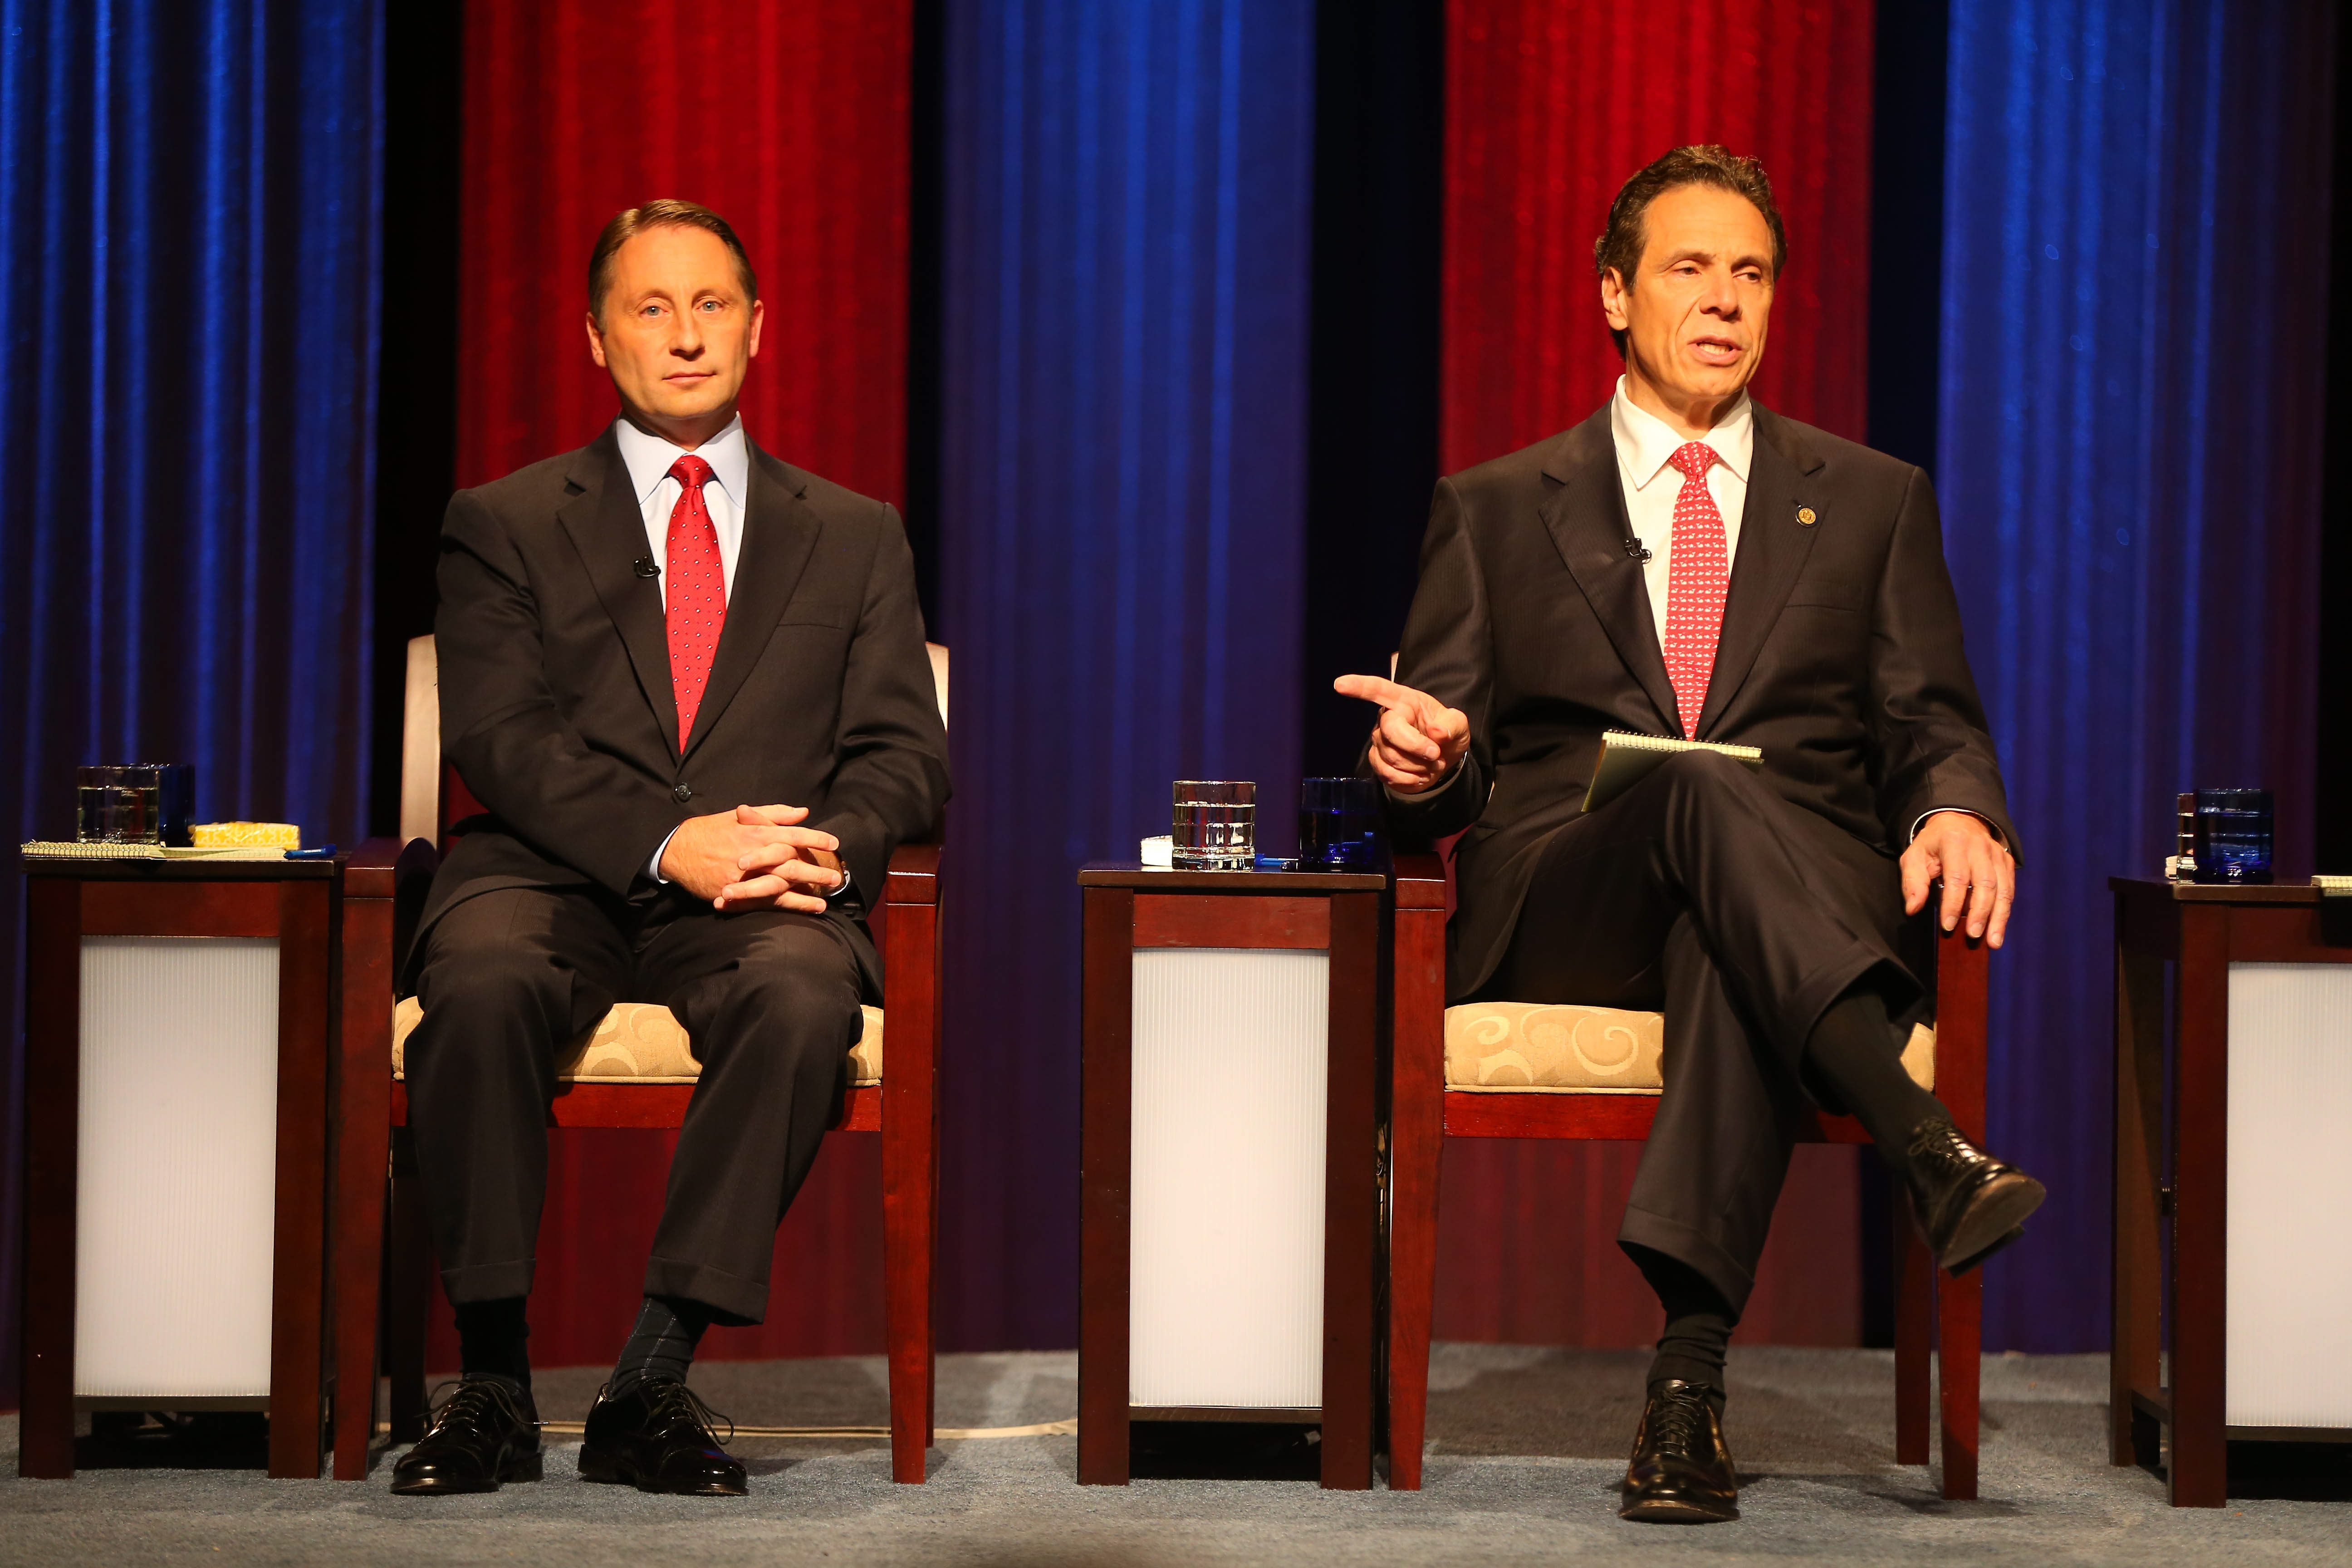 New York gubernatorial candidate Rob Astorino listens as Gov. Andrew Cuomo answers a question during a debate sponsored by WNED-WBFO and The Buffalo News at WNED studios in Buffalo, N.Y. Wednesday, Oct. 22, 2014.  (Mark Mulville/Buffalo News)